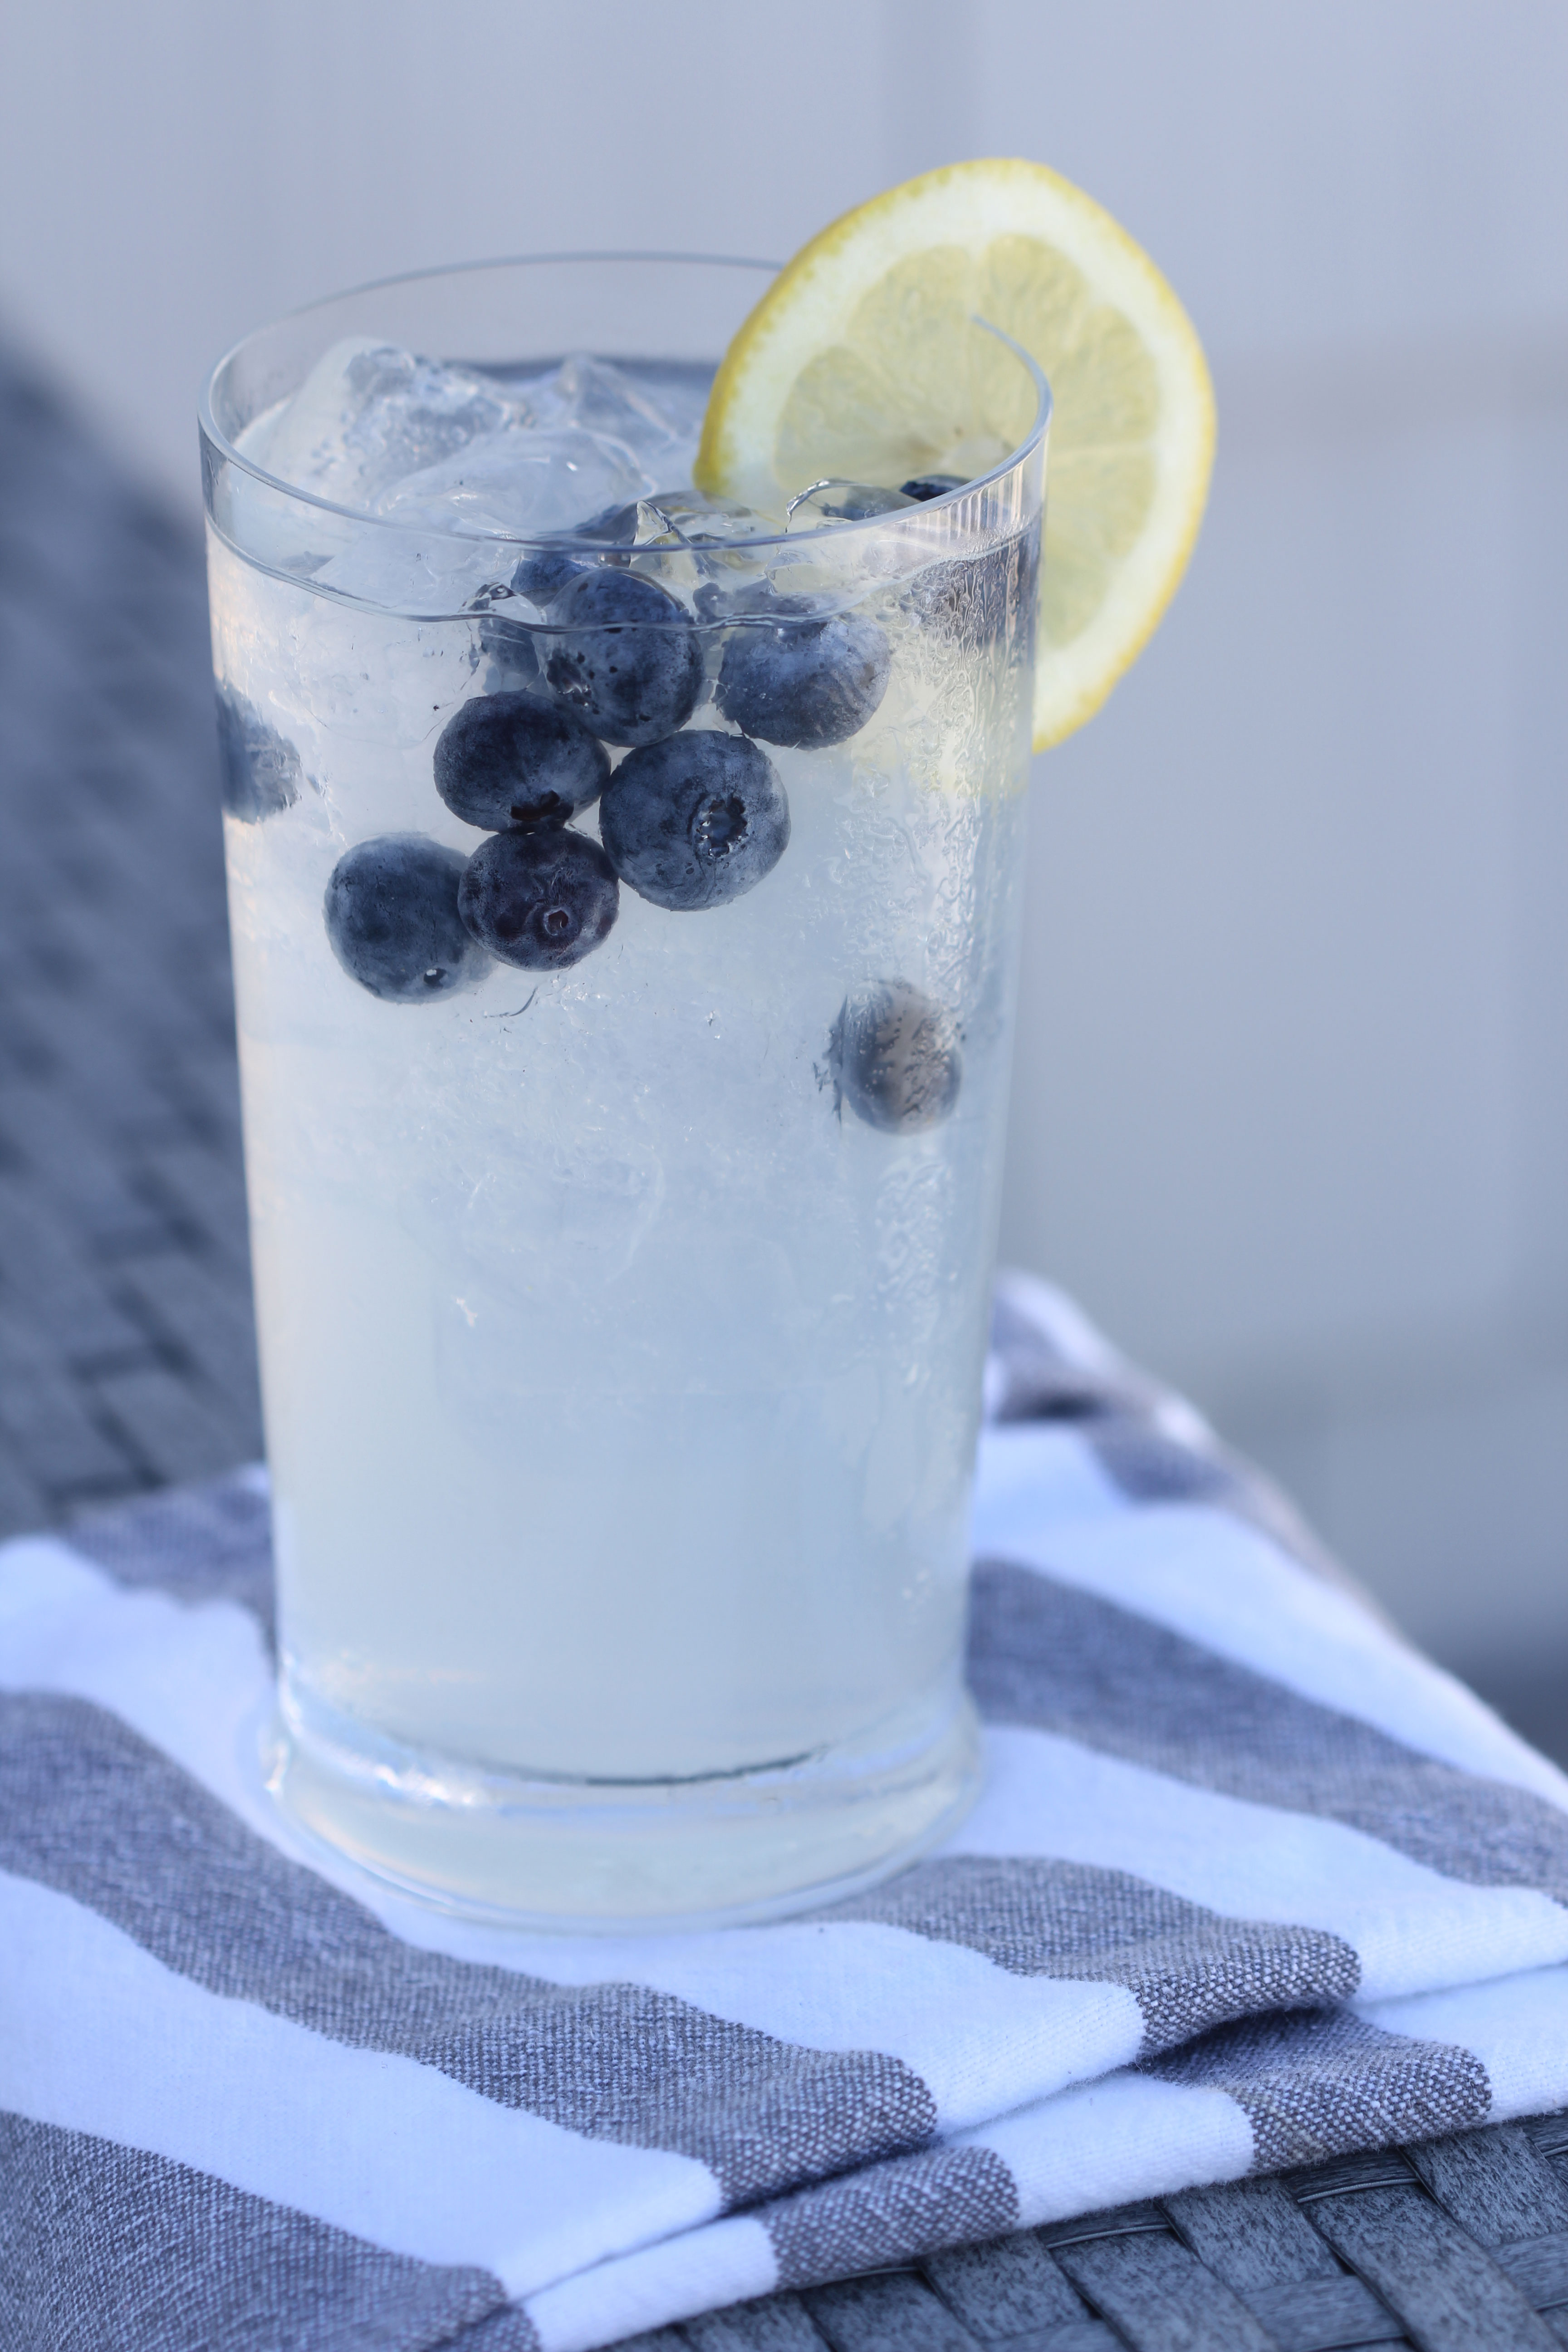 Looking for a fresh, delicious cocktail, Ridgely Brode makes a spiked blueberry lemonade and shares the recipe on her blog, Ridgely's Radar.